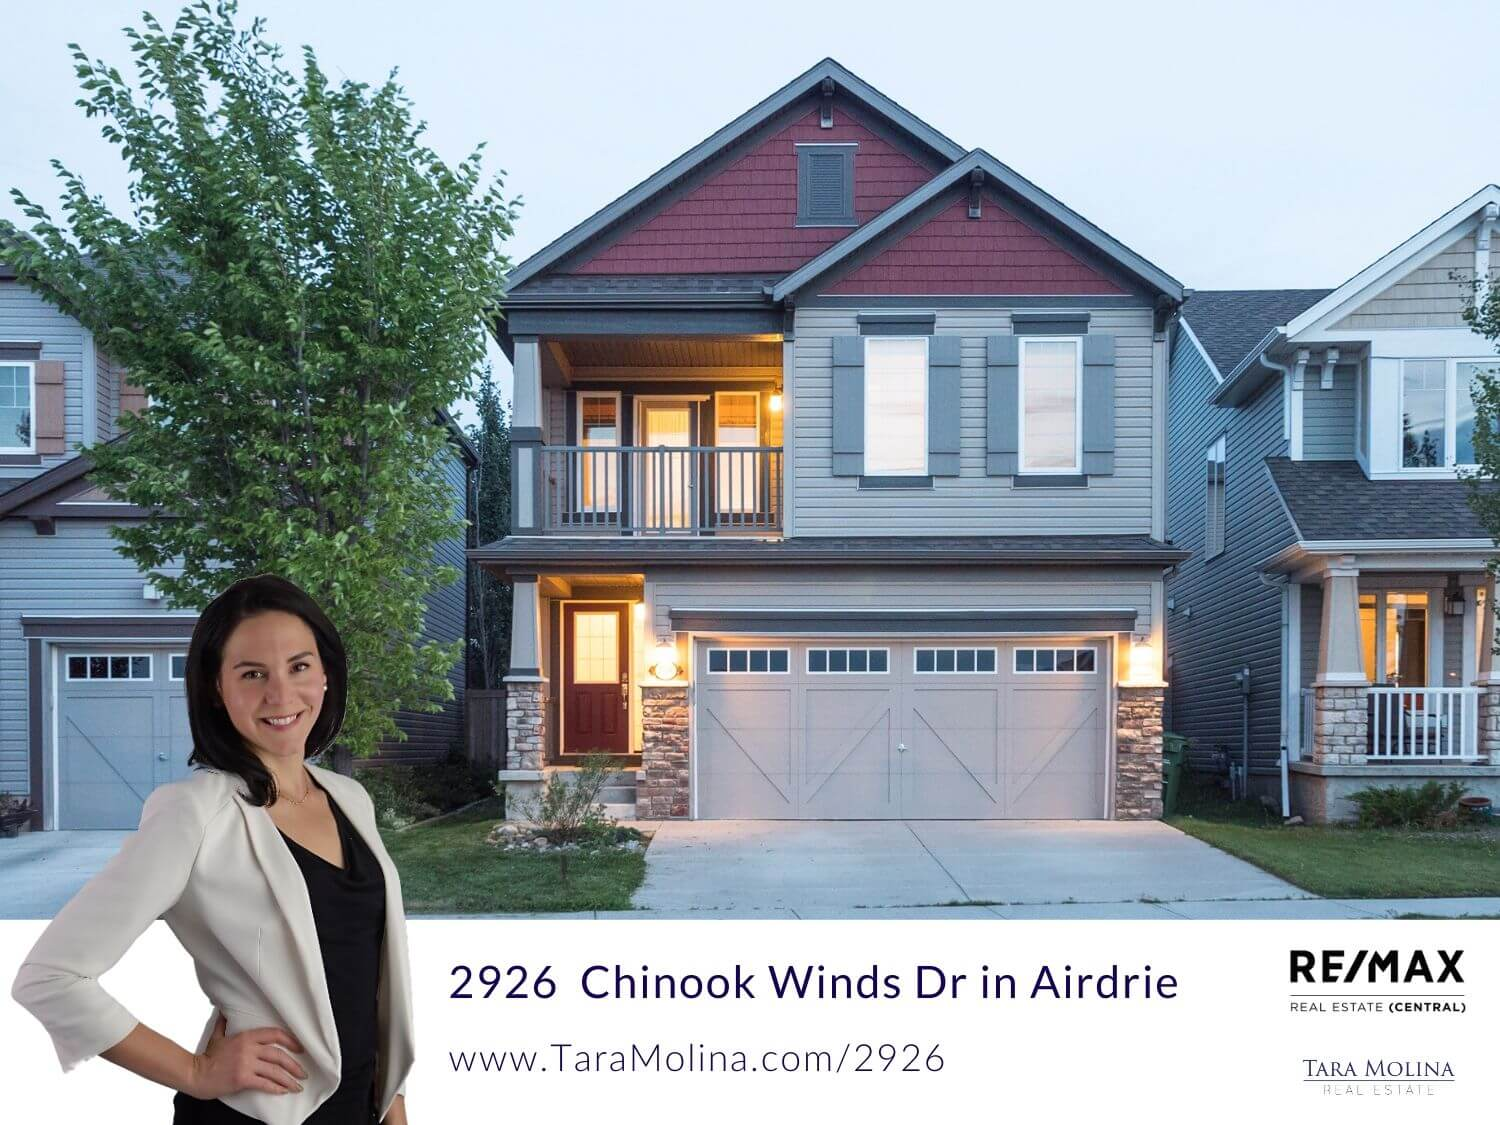 2926 Chinook Winds Dr in Airdrie